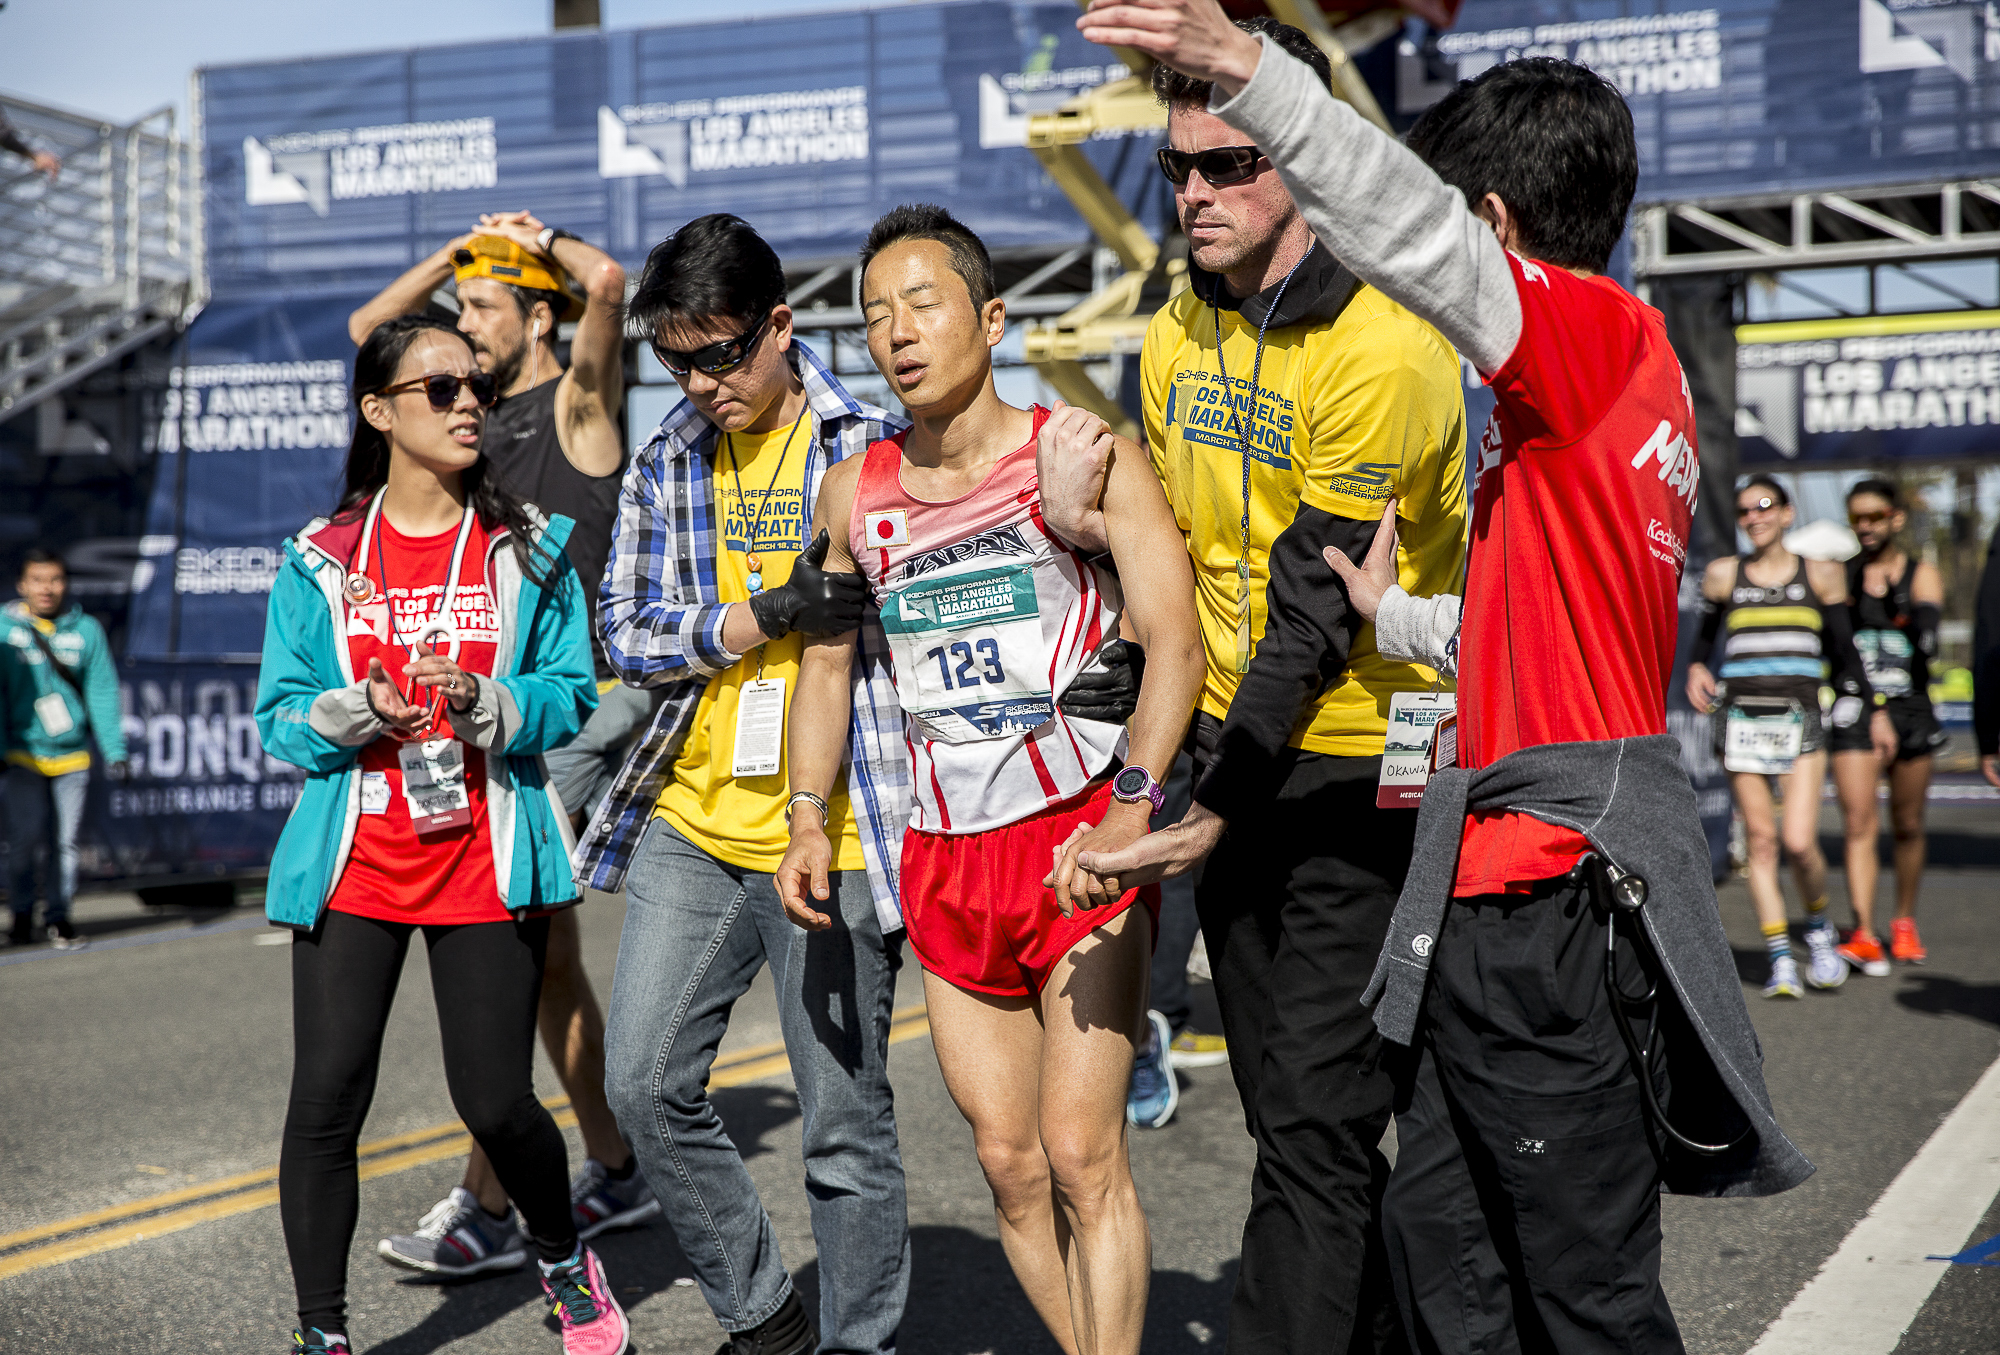 """Koji Kawamoto (bib #123) receives help from """"Hotwalkers"""" after finishing the 2018 Los Angeles Marathon with a total race time of 3:11:40 on March 18, 2018 in Santa Monica, California. """"Hotwalkers"""" are Los Angeles Marathon volunteers who escort runners to the medical tent after finishing the event if they are showing signs of ill health. (Matthew Martin/Corsair Photo)"""